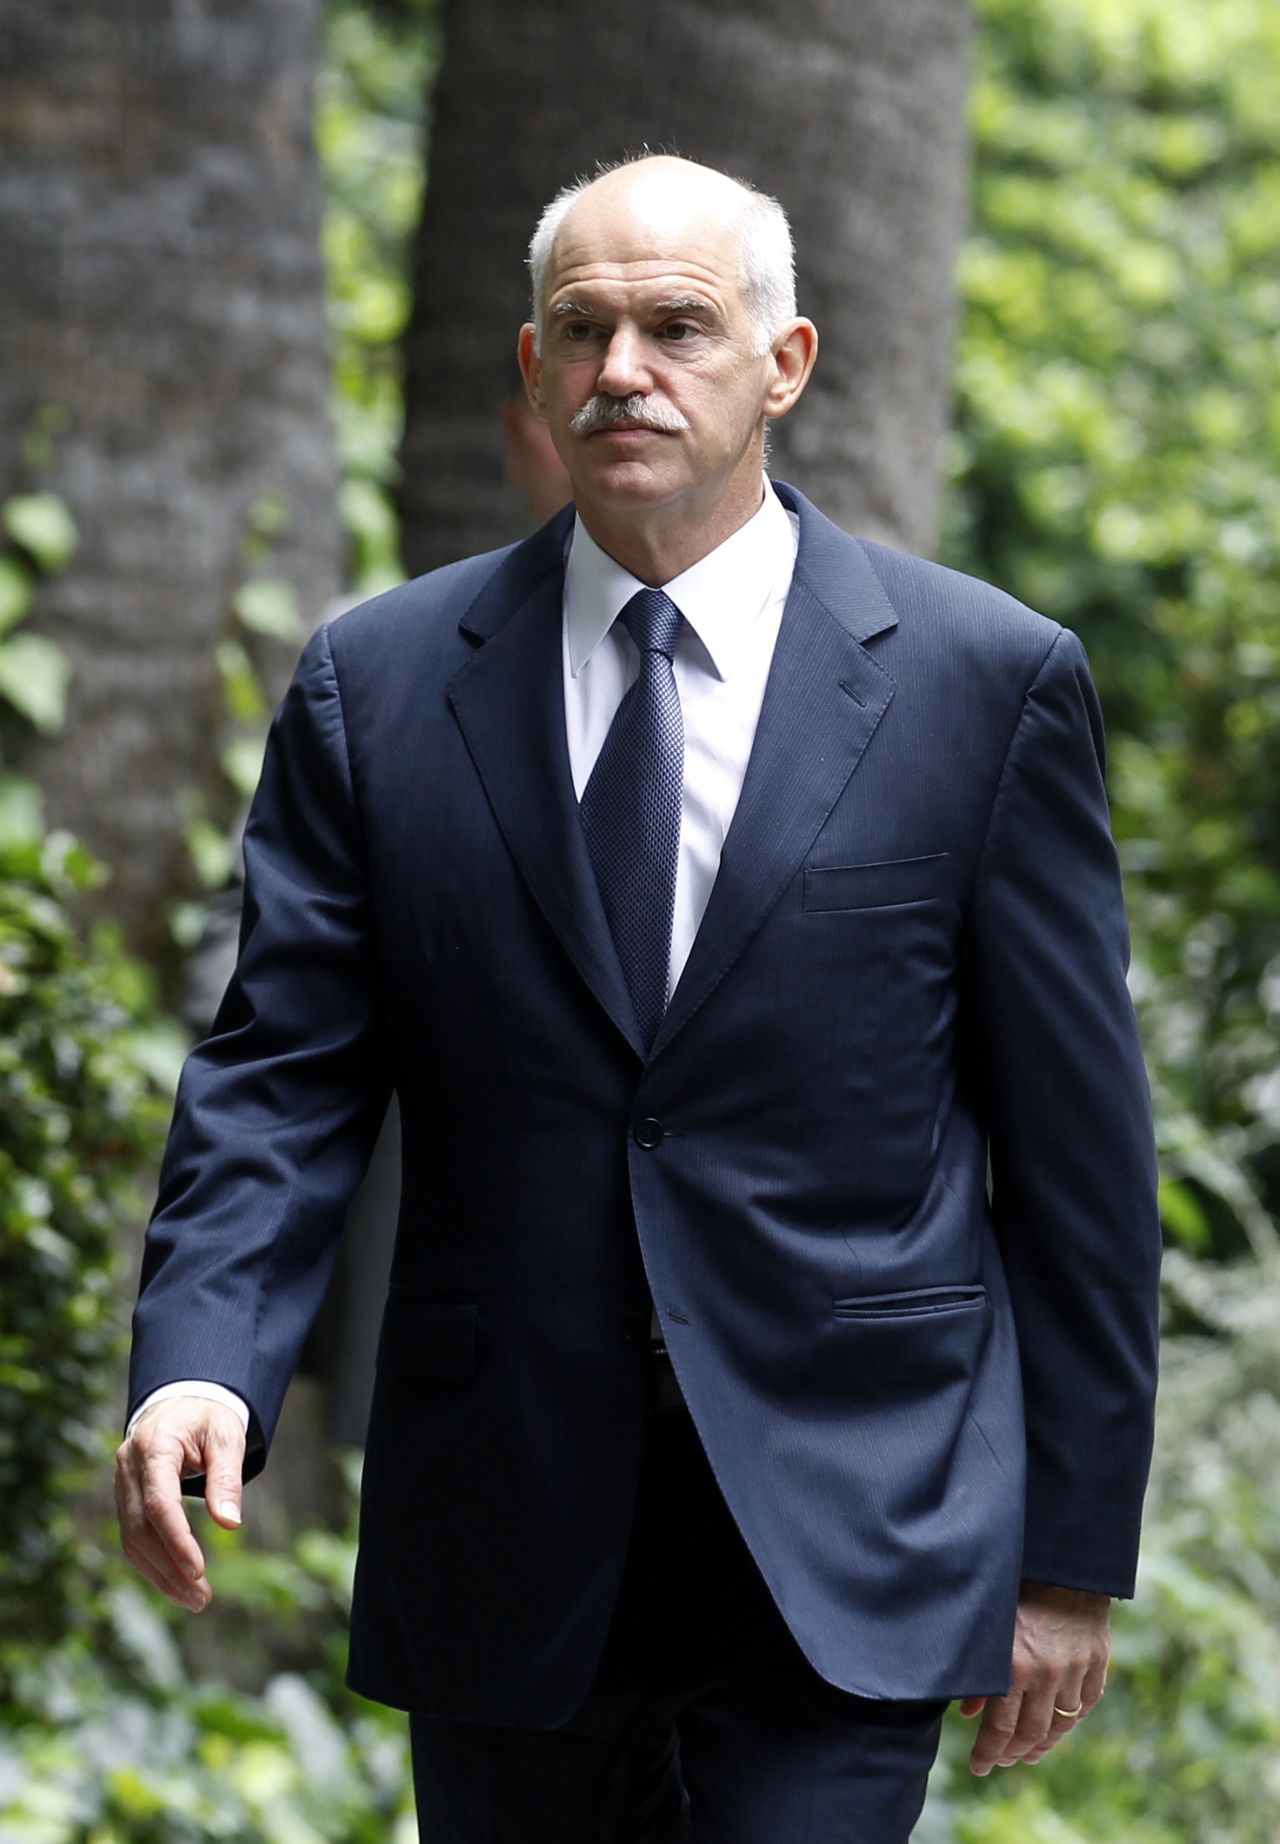 De Griekse premier Papandreou gisteren na een gesprek met president Papoulias over de politieke en economische crisis. Foto Reuters Greece's Prime Minister George Papandreou leaves the Presidential palace after a meeting with Greek President Karolos Papoulias in Athens June 15, 2011. Papandreou offered on Wednesday to step down and make way for a national unity government if the opposition agreed on a clear plan on how to proceed with reforms, government sources said. REUTERS/Yiorgos Karahalis (GREECE - Tags: BUSINESS POLITICS)